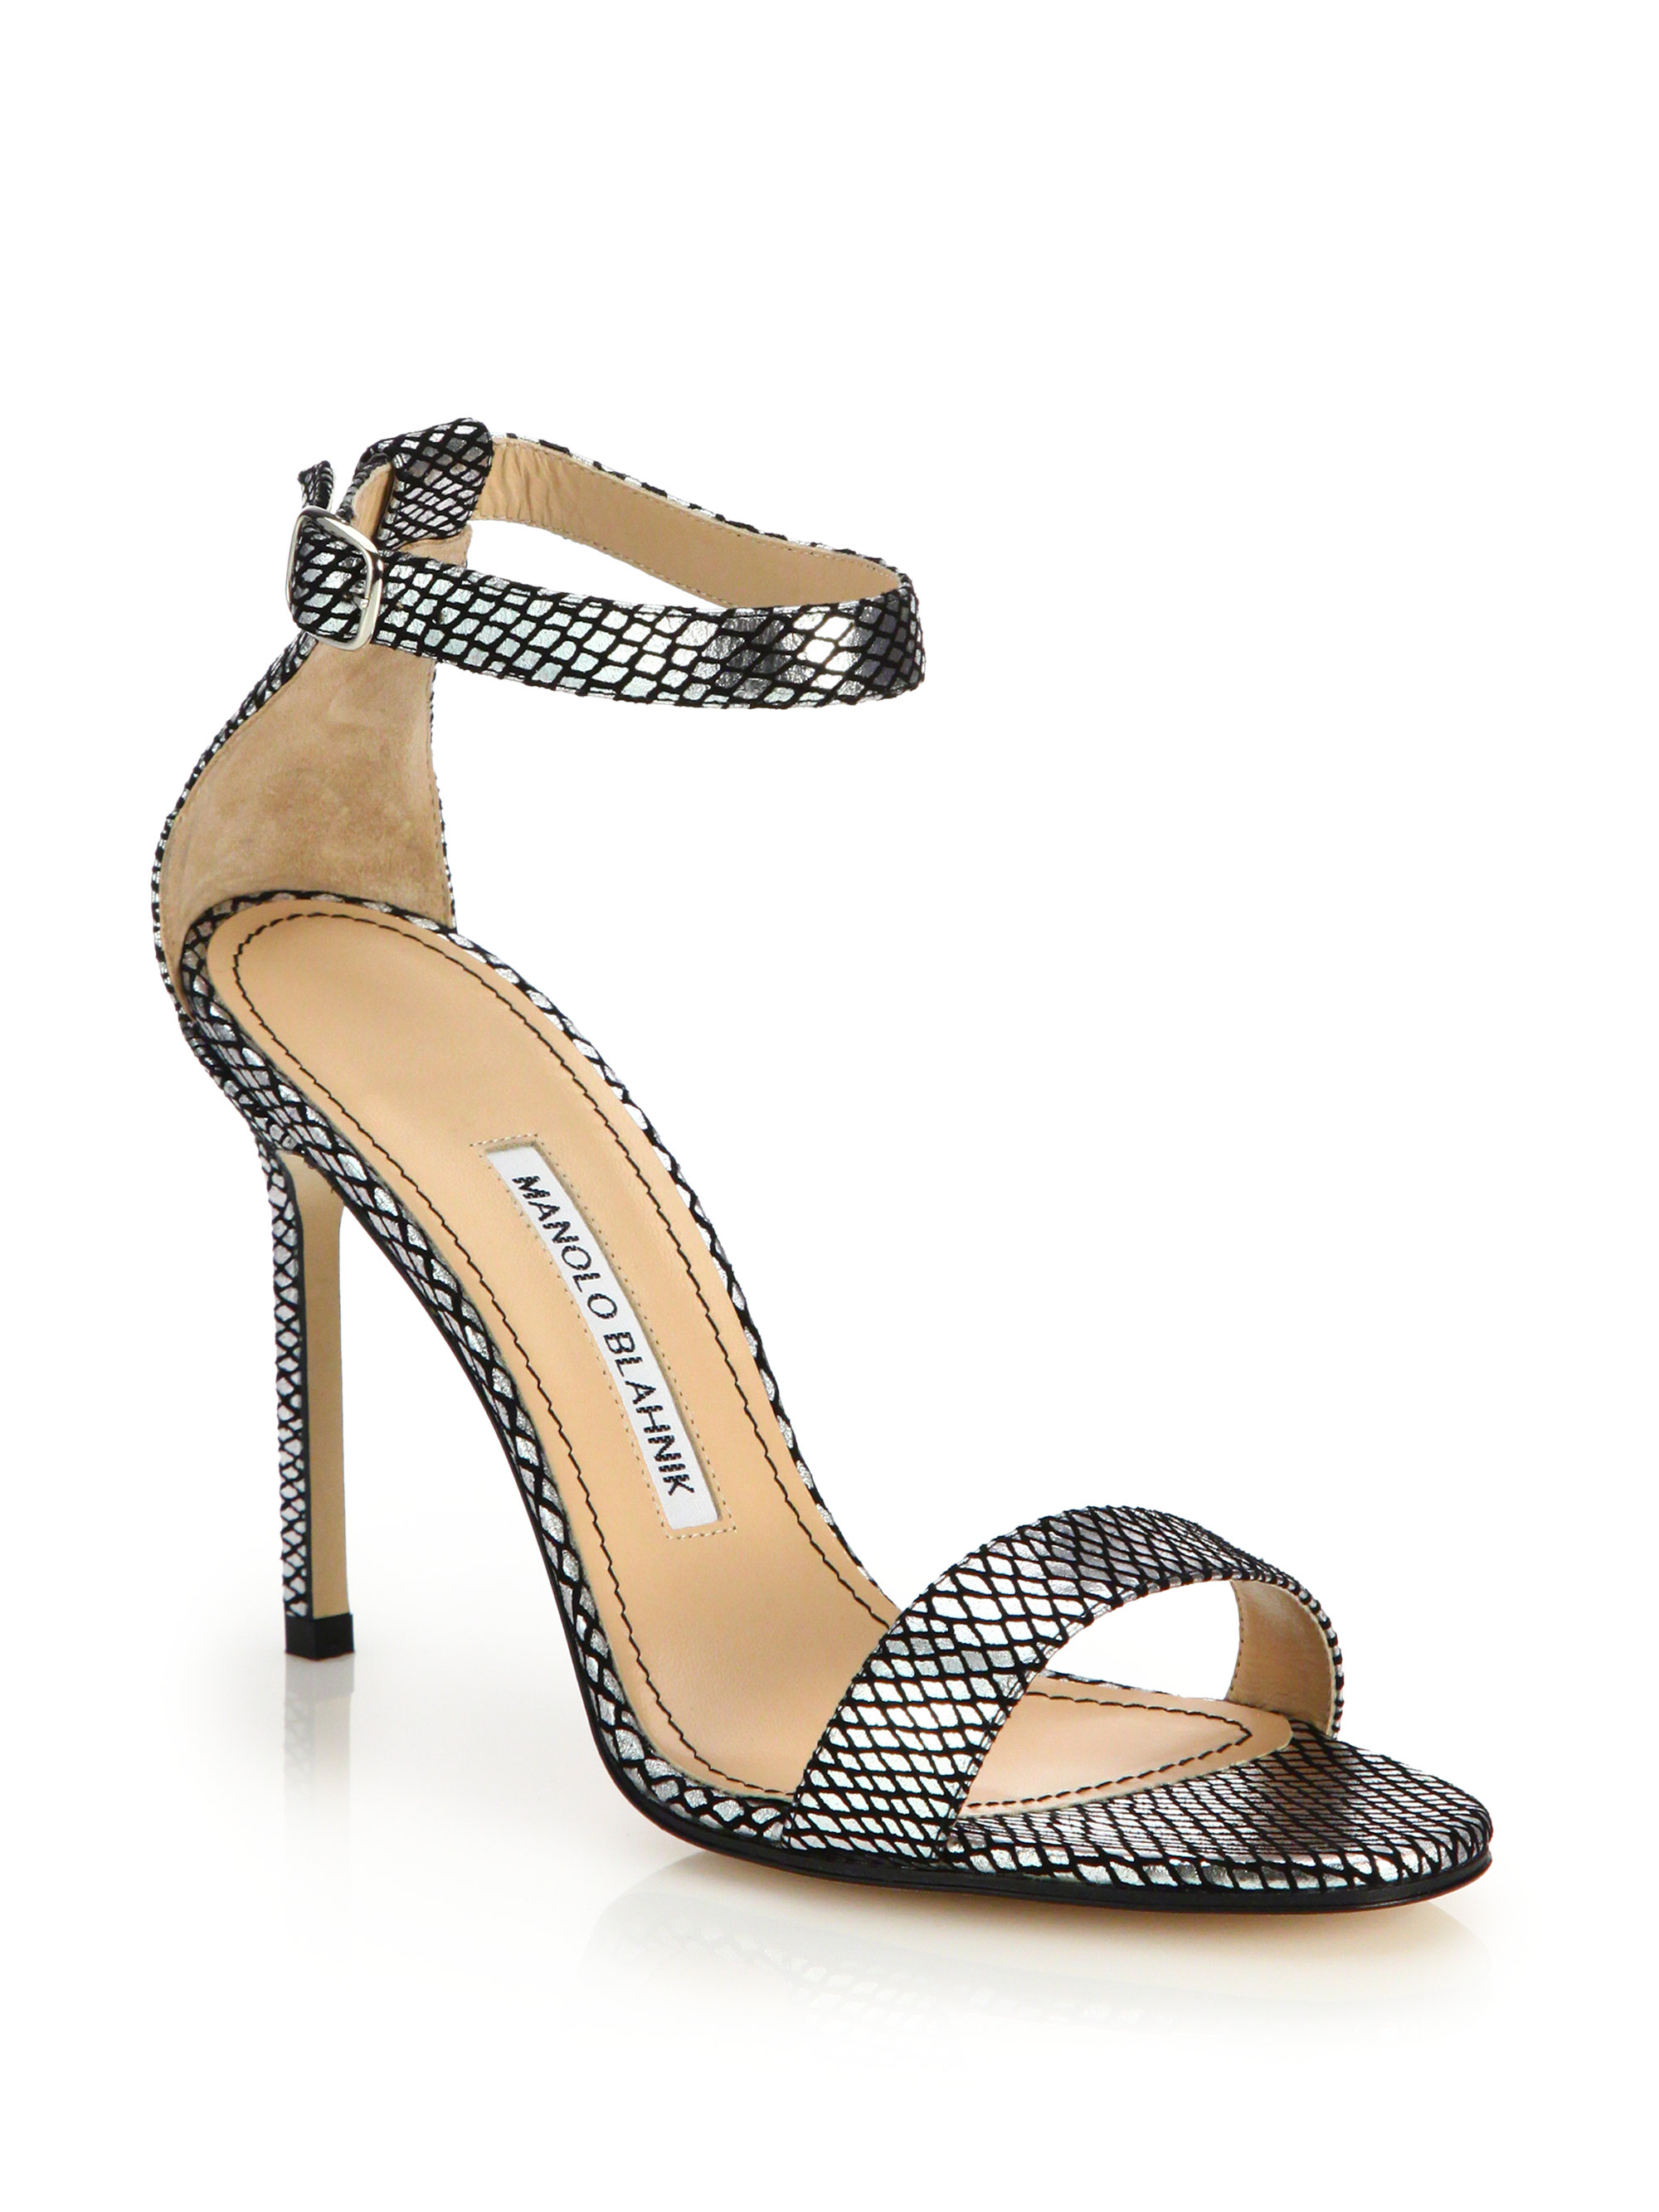 Manolo Blahnik Chaos Printed Sandals sale websites 8dsQJe